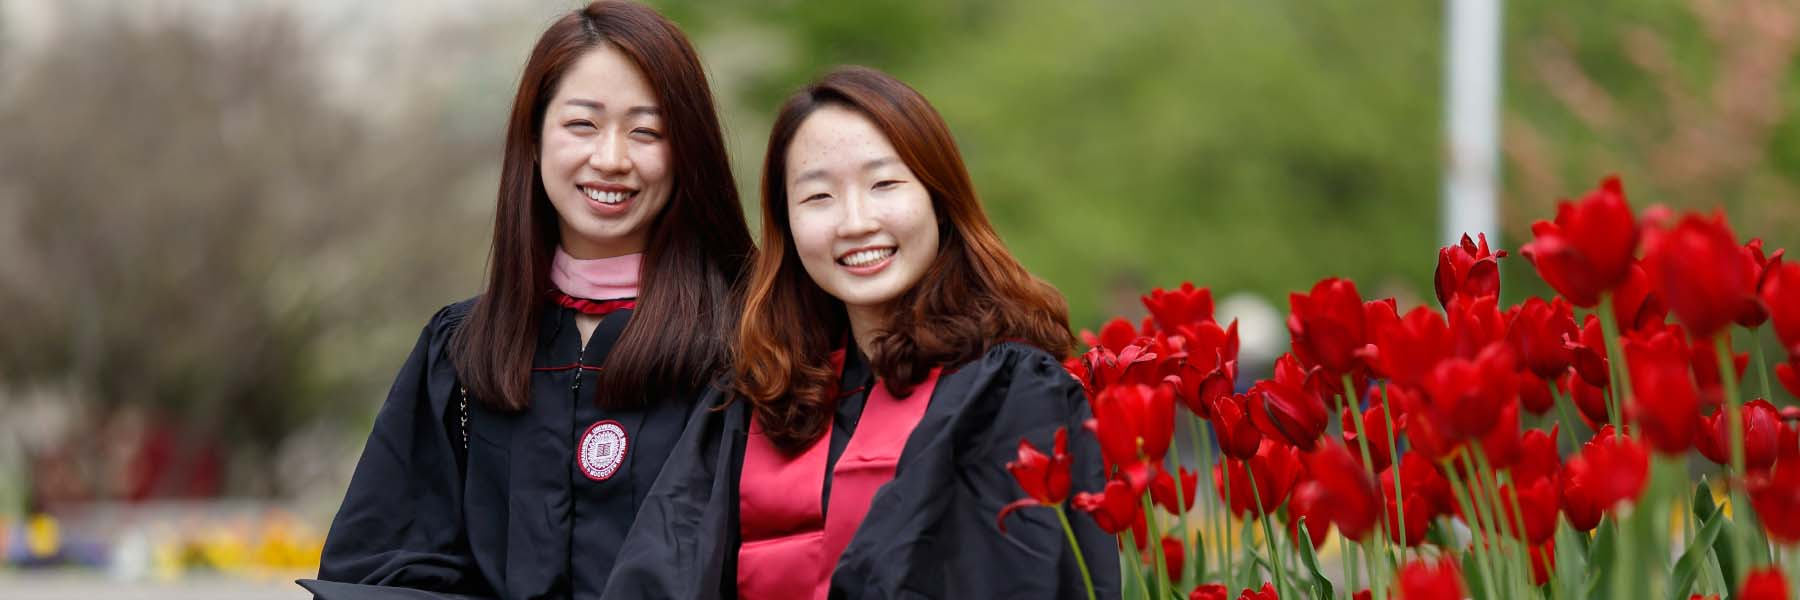 Two girls embrace while wearing their IU graduation gowns.